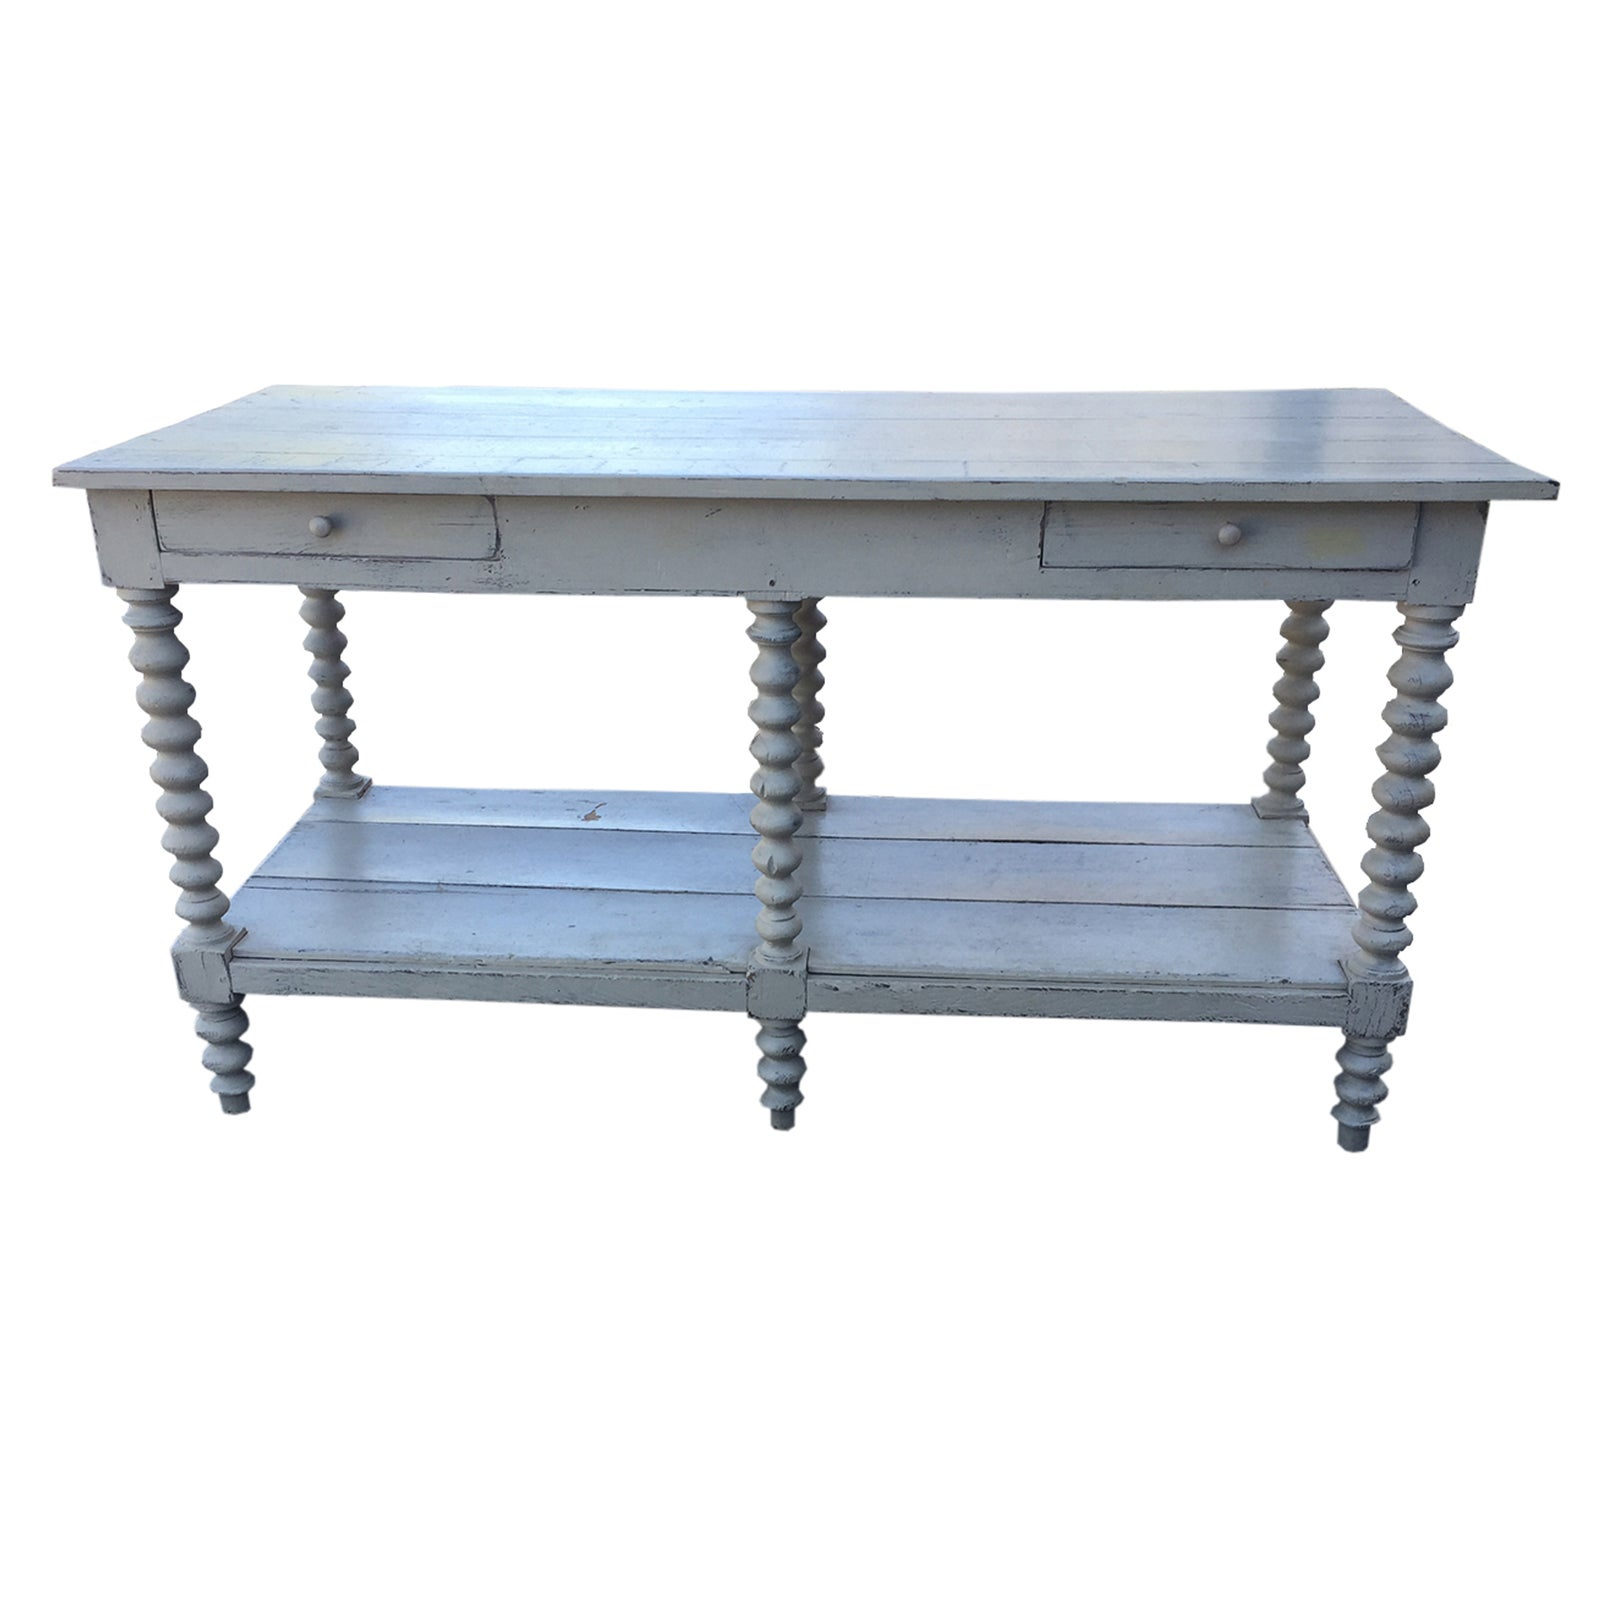 19th-20th Century Painted American Work Table